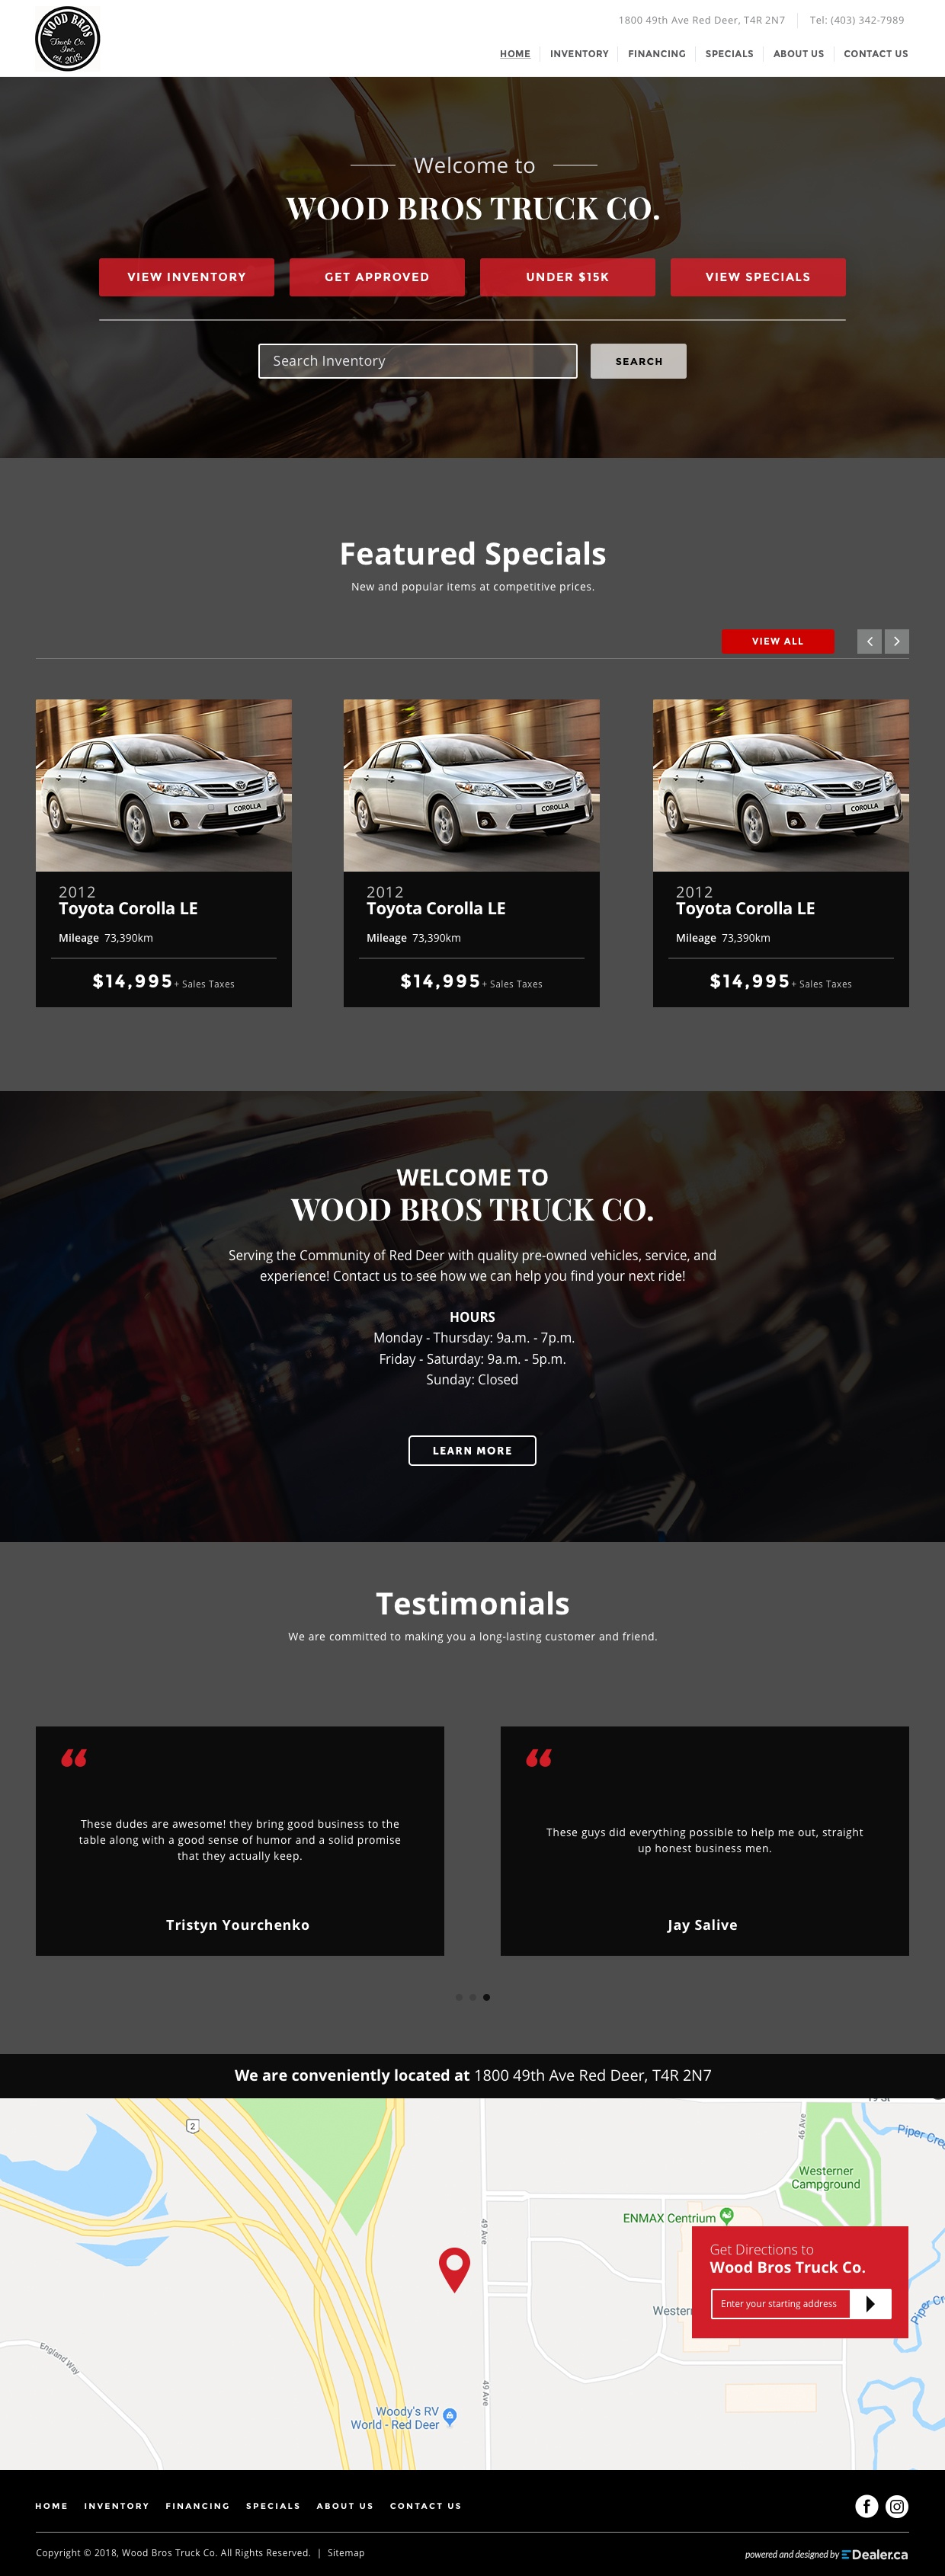 Wood Bros Truck Co